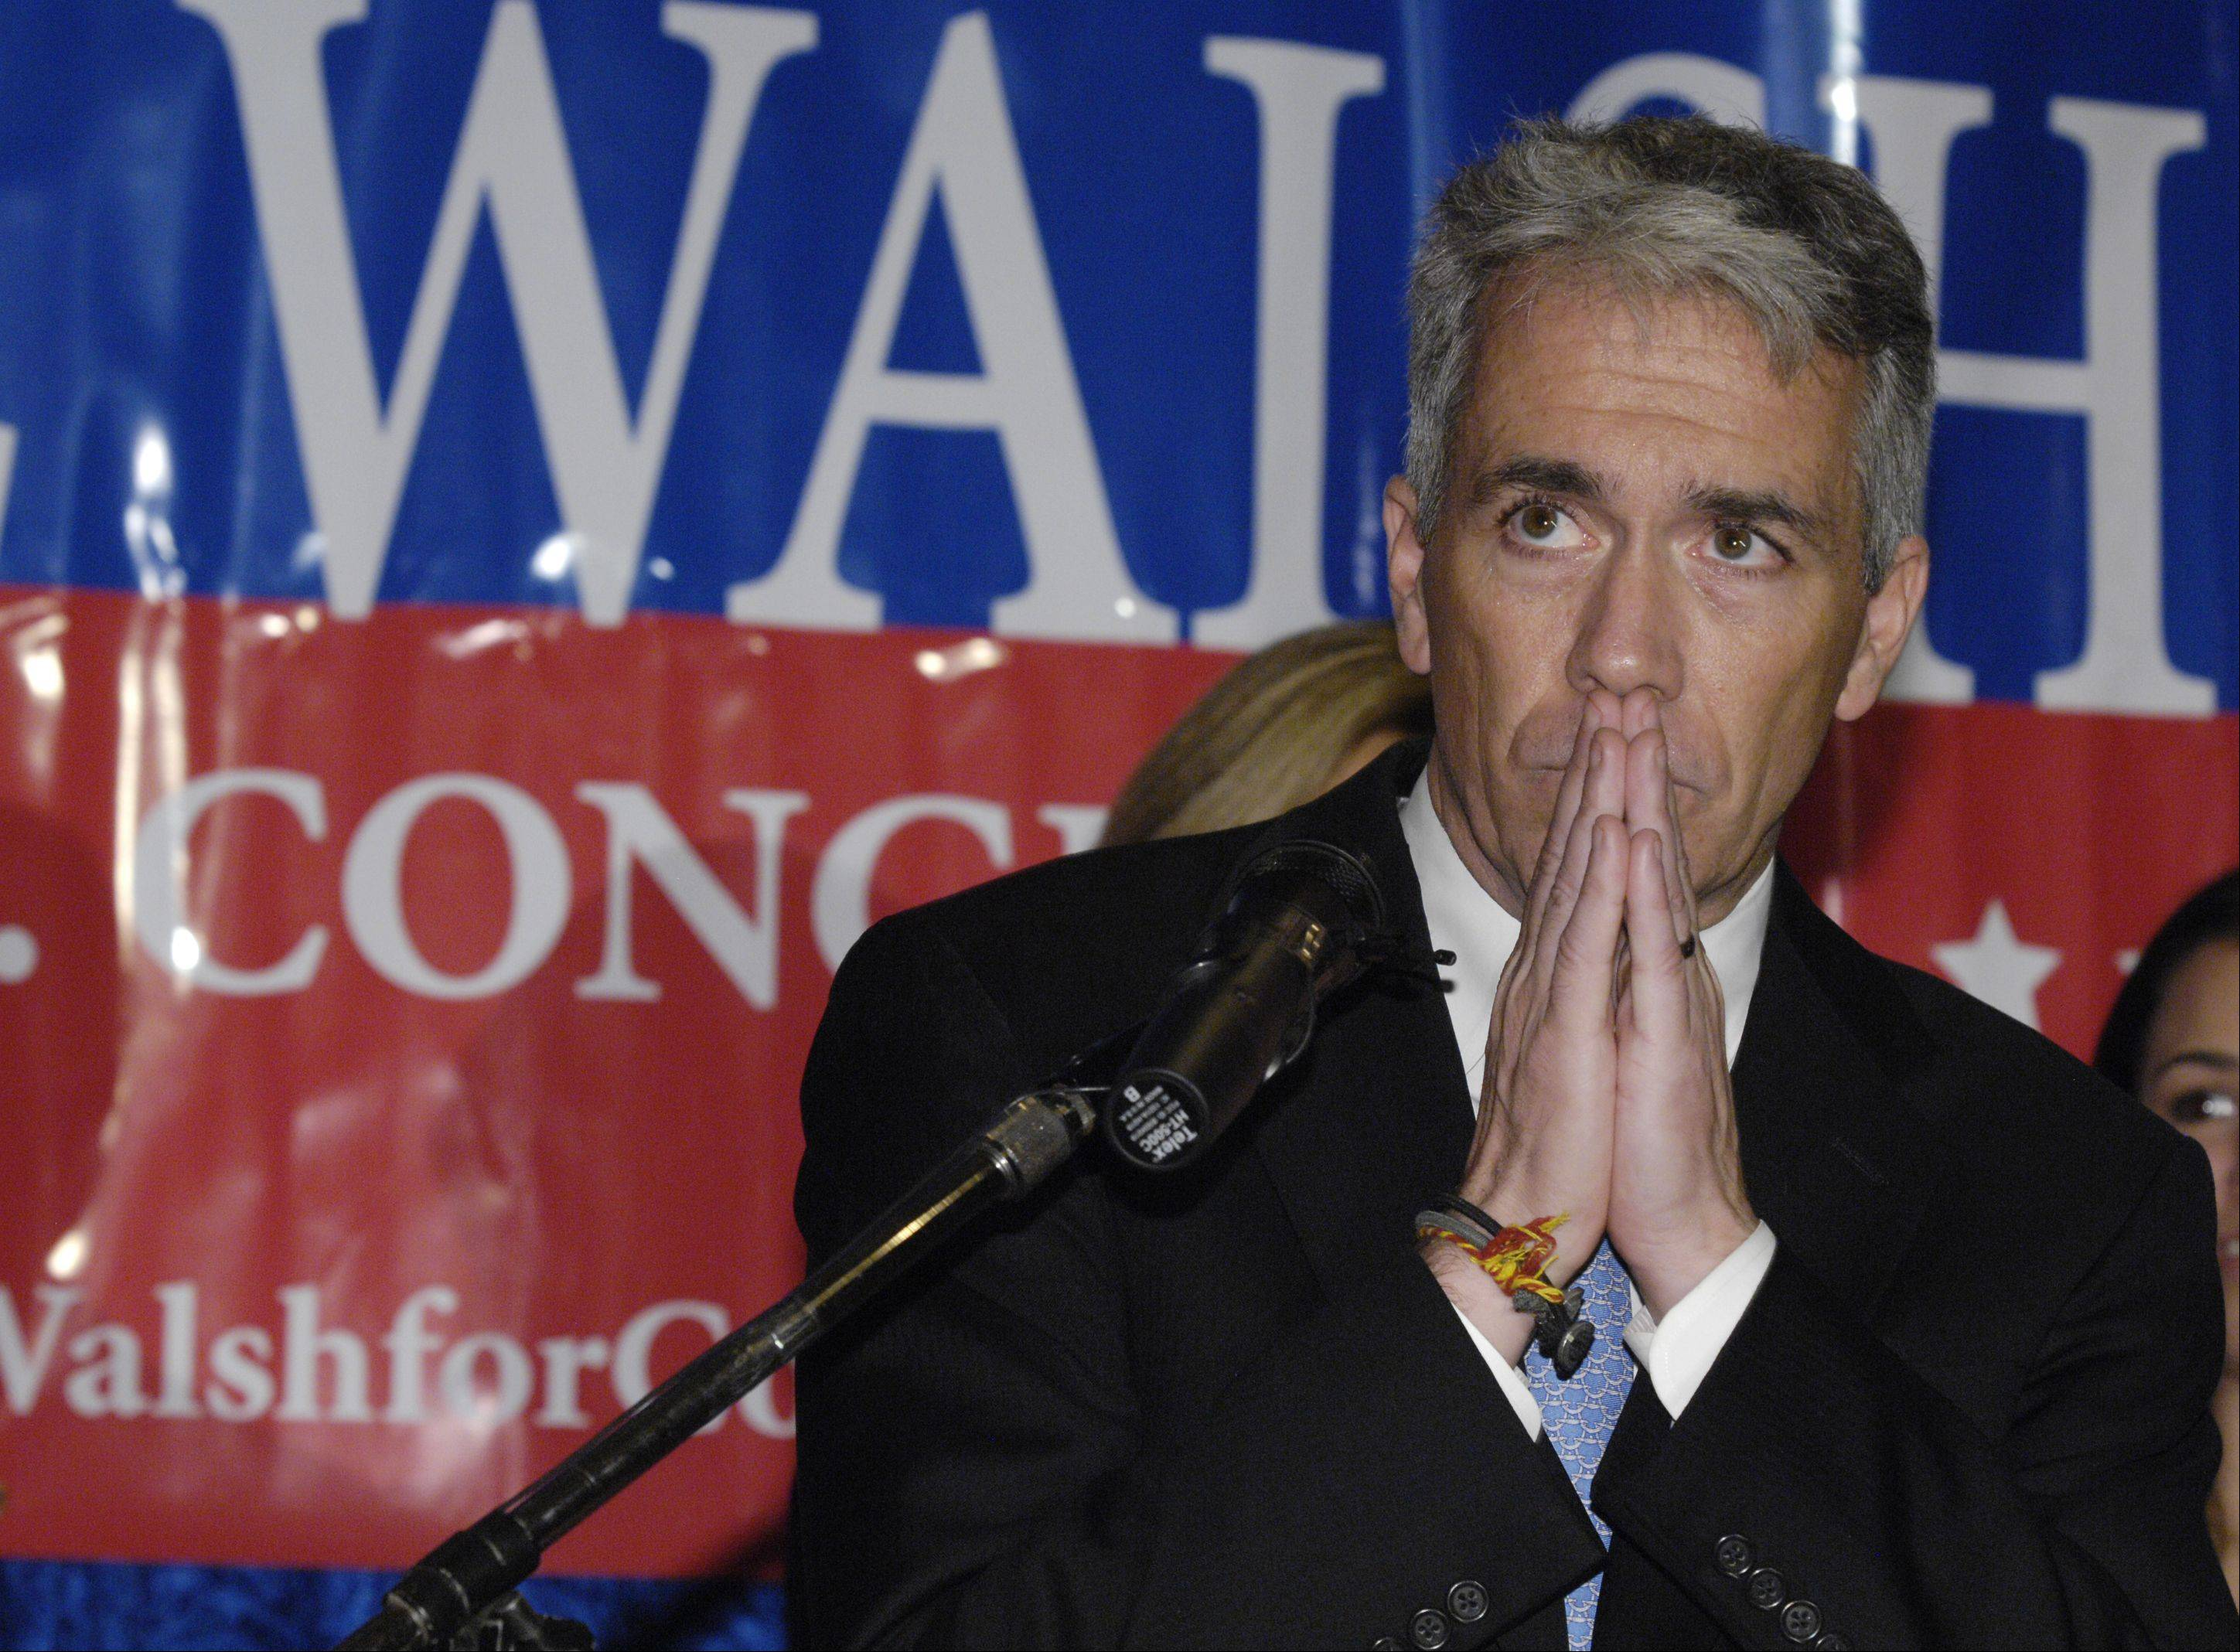 8th District Congressman Joe Walsh speaks to supporters as he concedes defeat to Tammy Duckworth during an election night event at the Medinah Shrine Center in Addison.